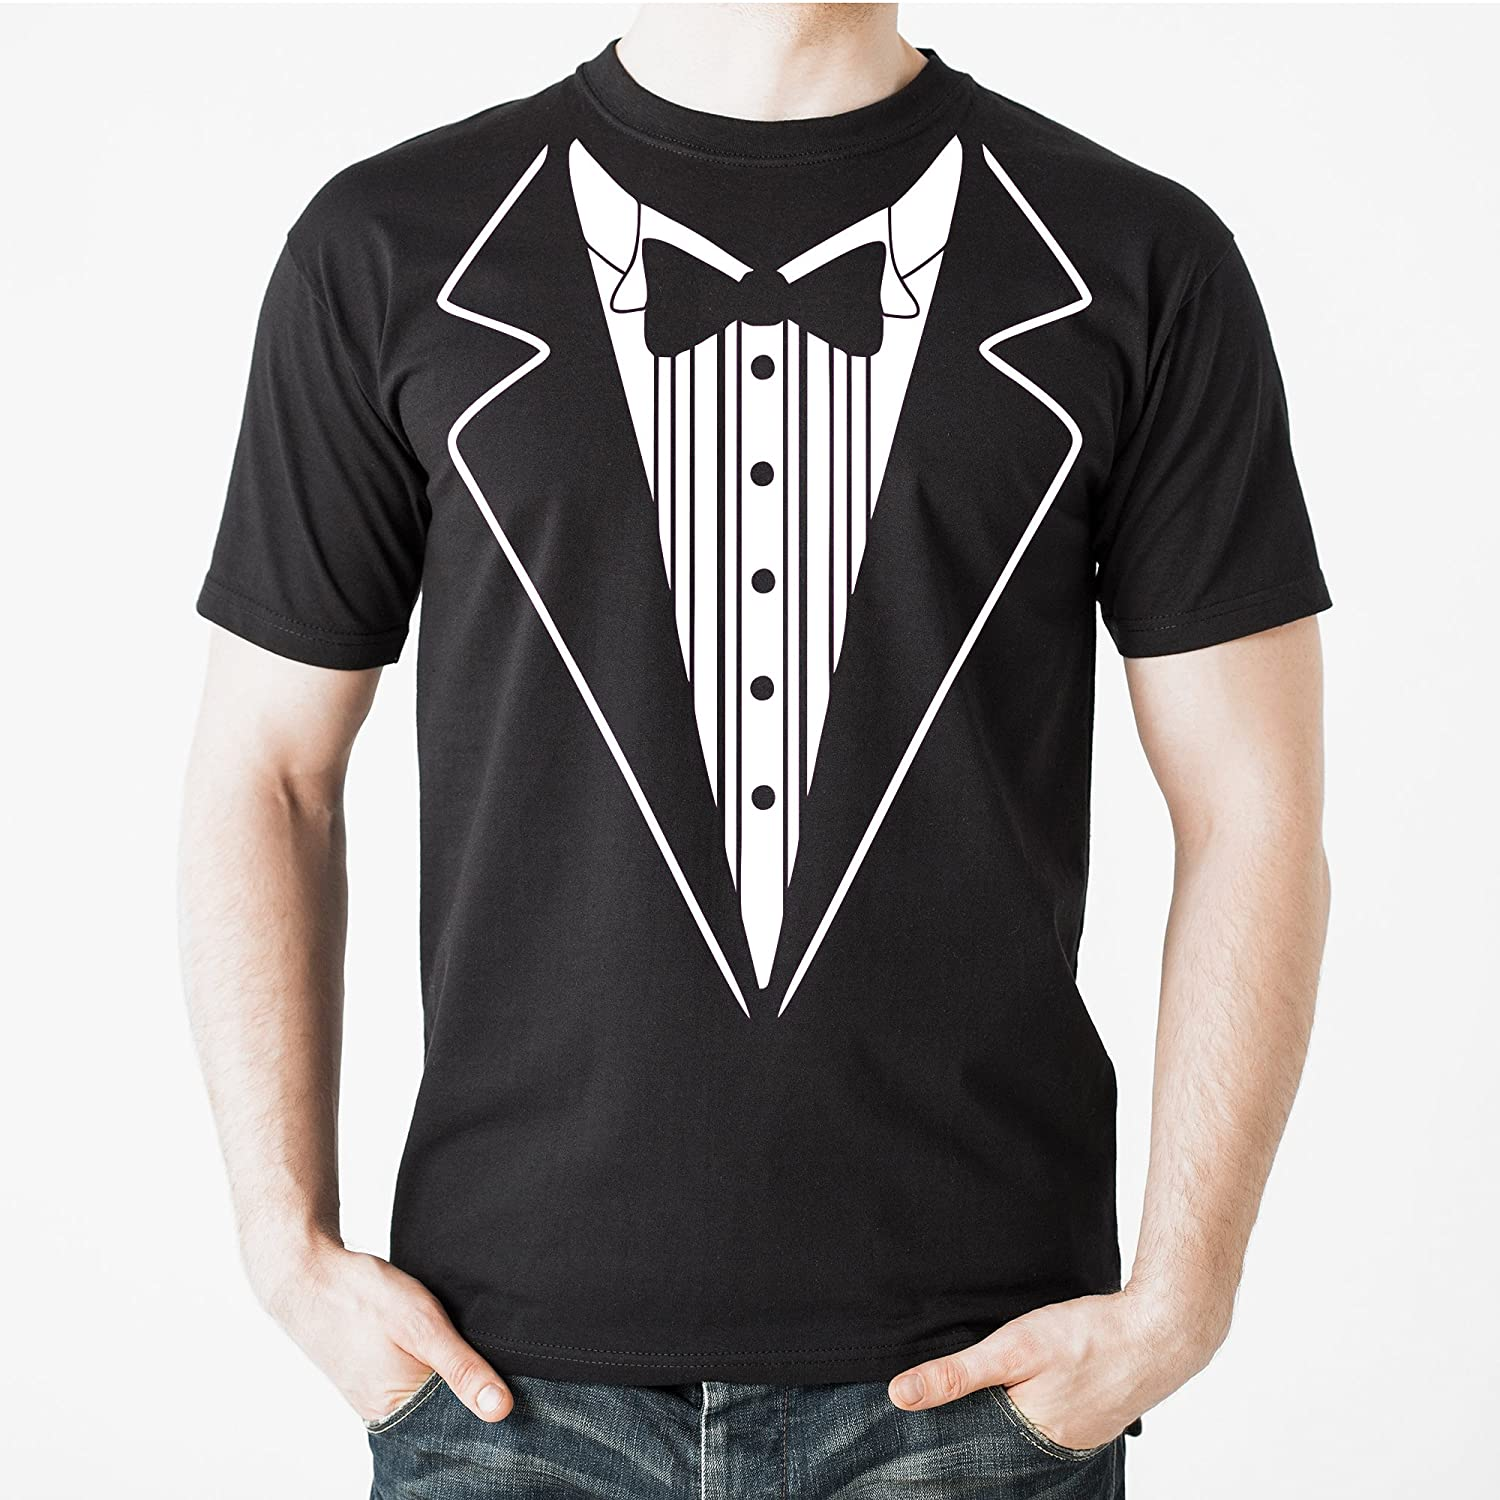 50692bd49 Amazon.com: Uink Tuxedo Men's T-Shirt Comfort Fit: Clothing